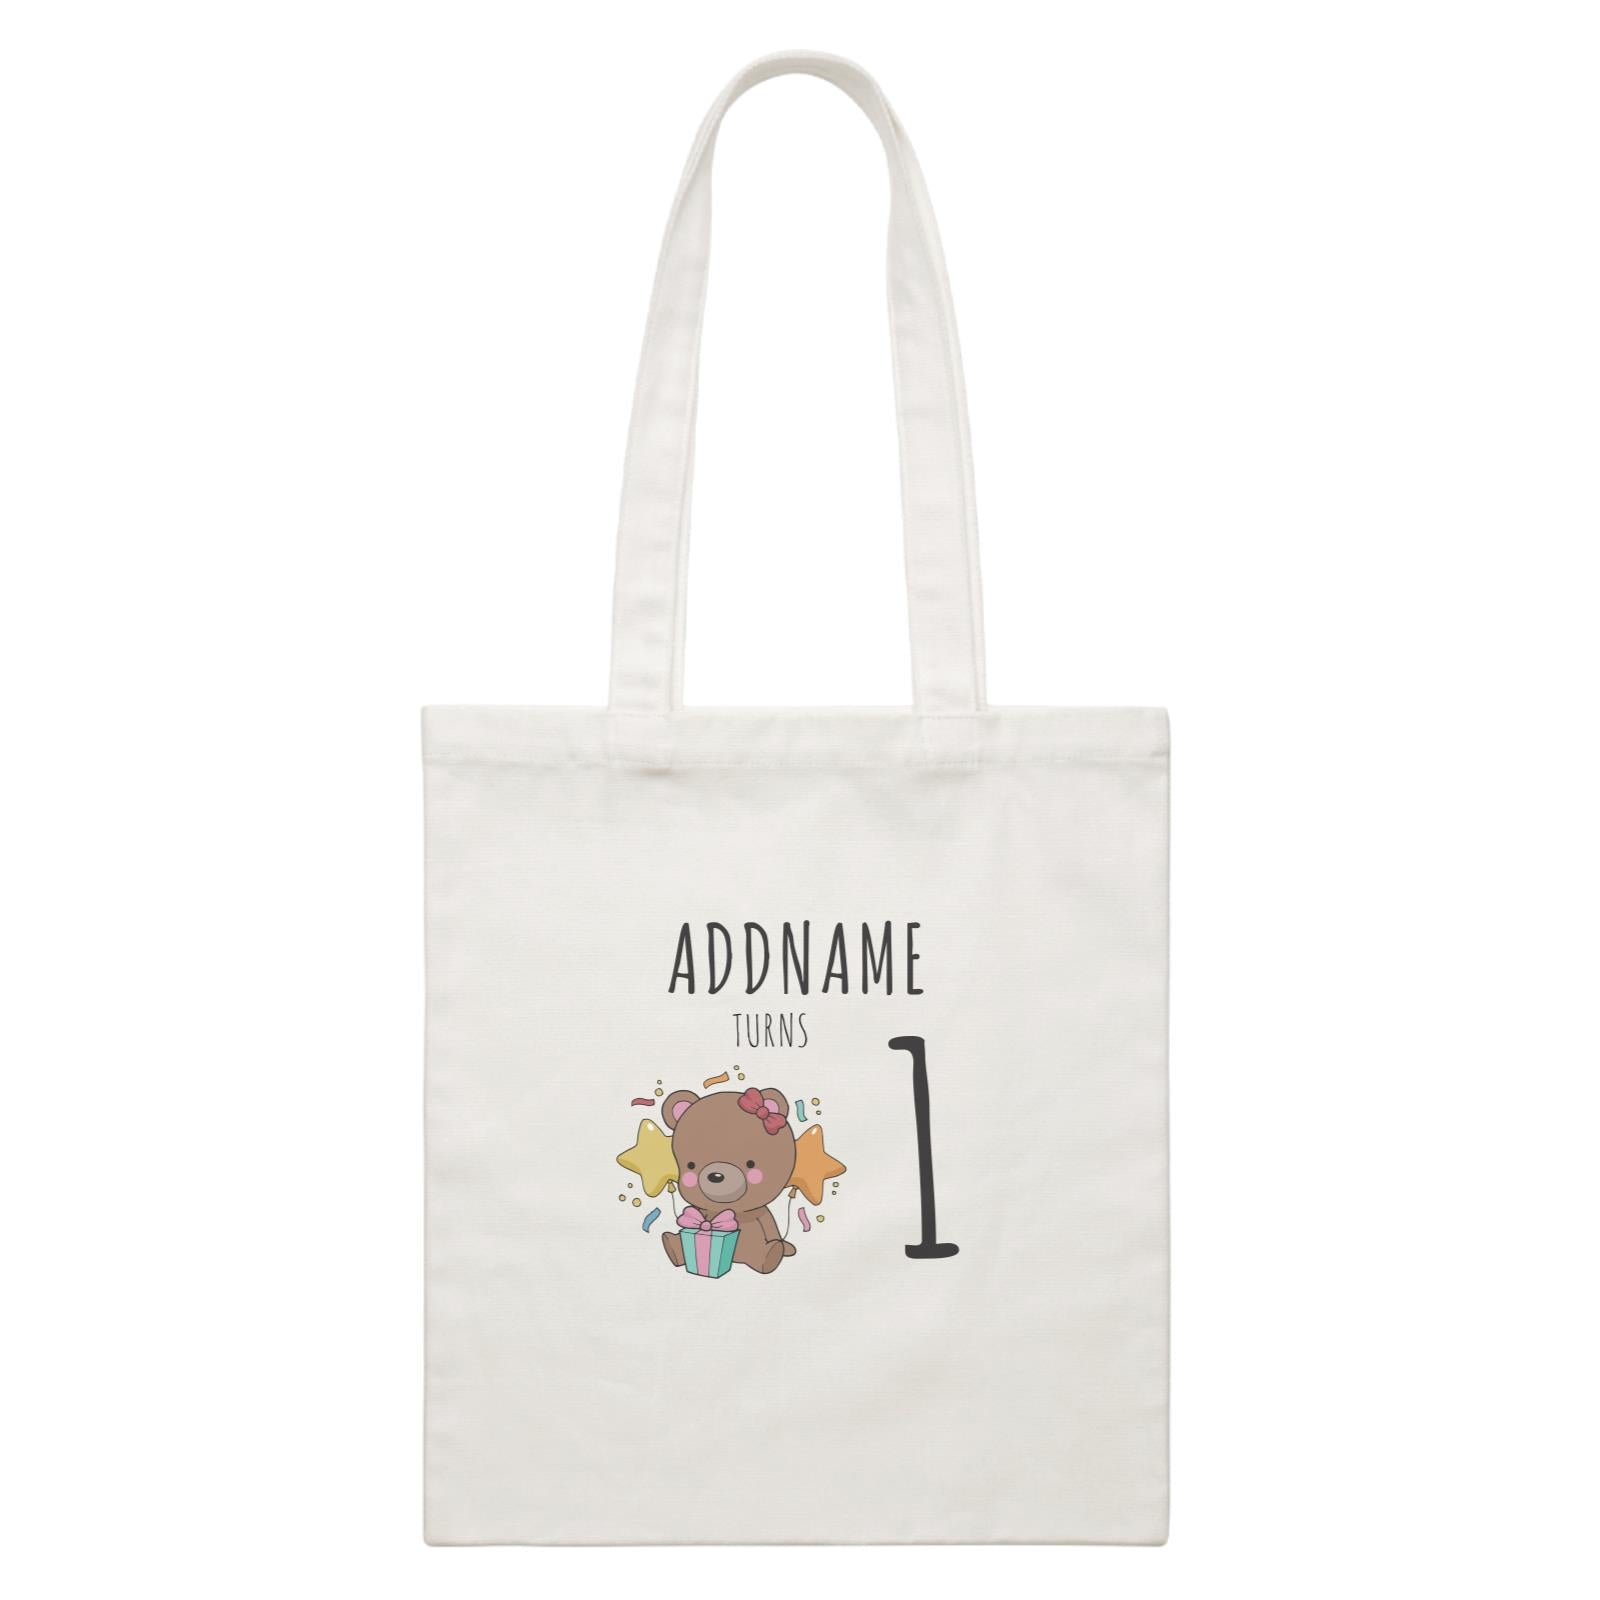 Birthday Sketch Animals Bear with Present Addname Turns 1 White Canvas Bag